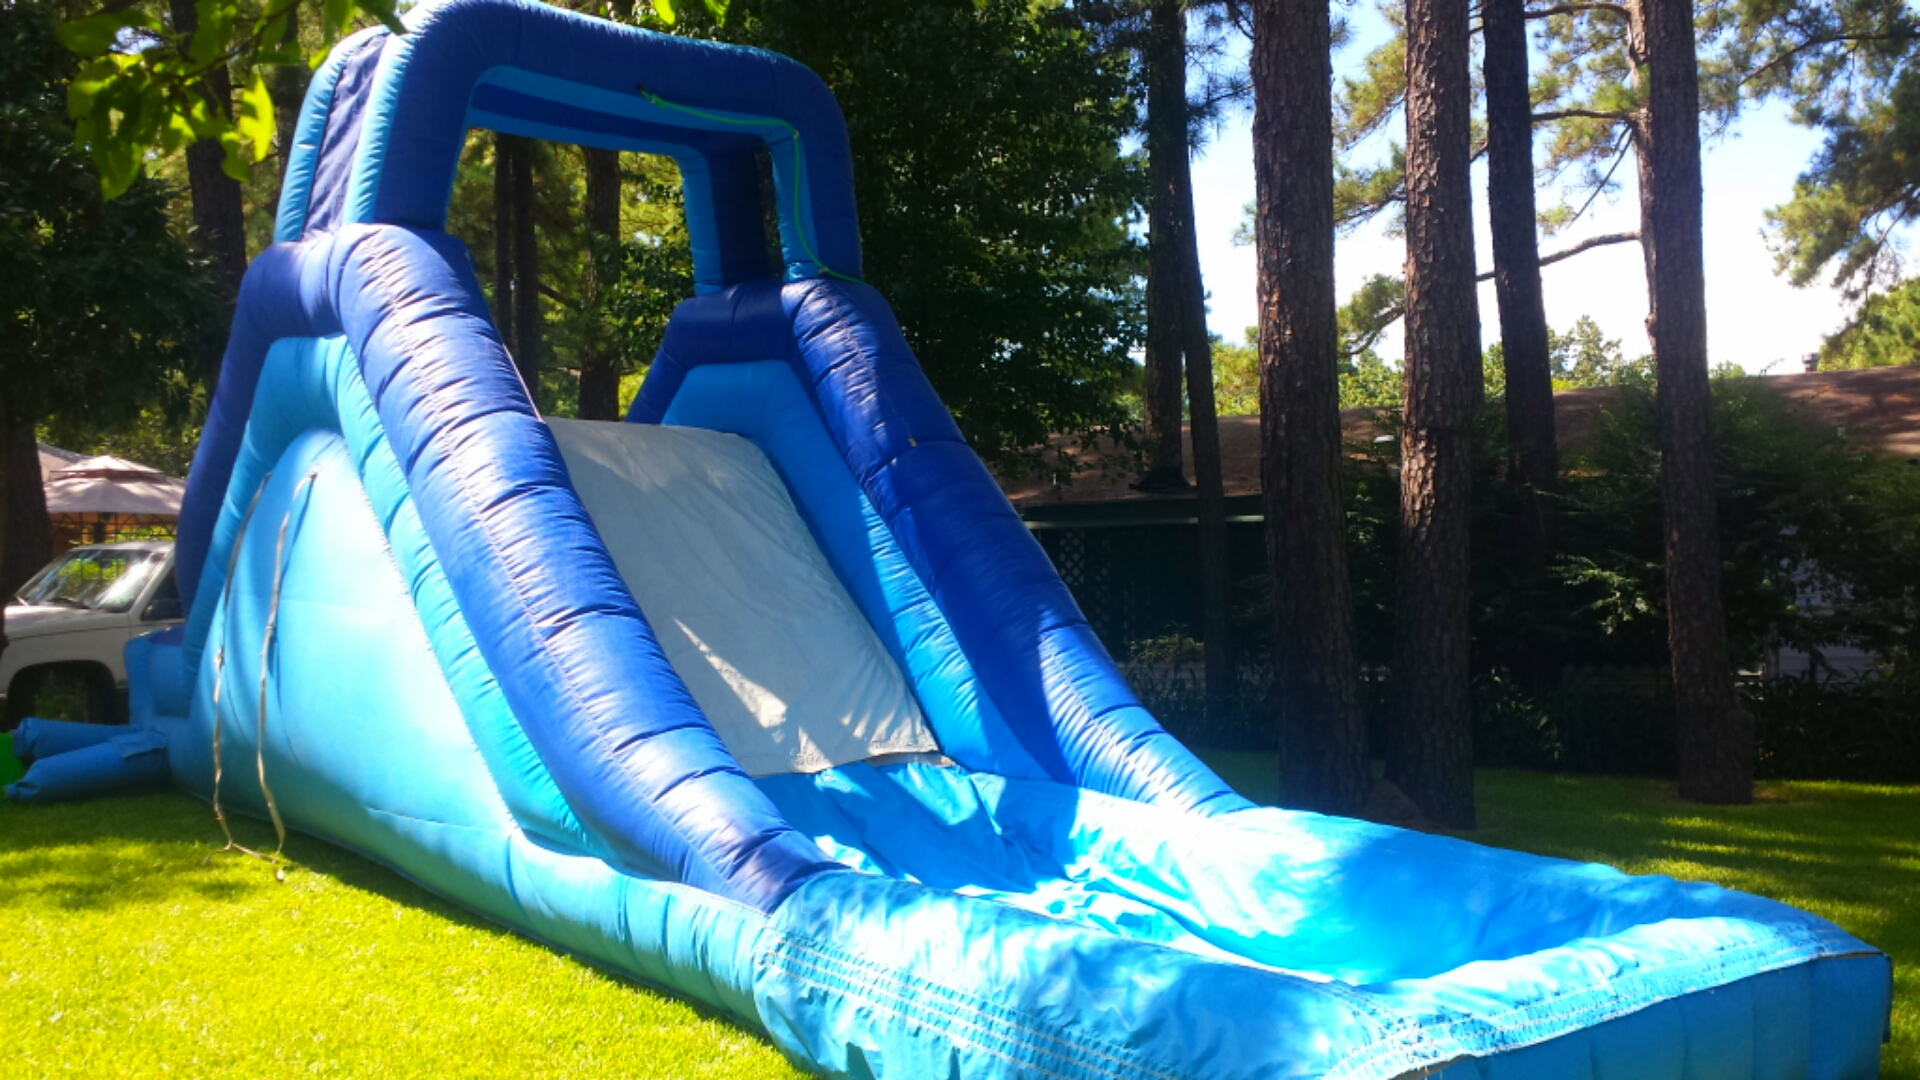 new waterslide backyard bounce inflatables u2013 call us today at